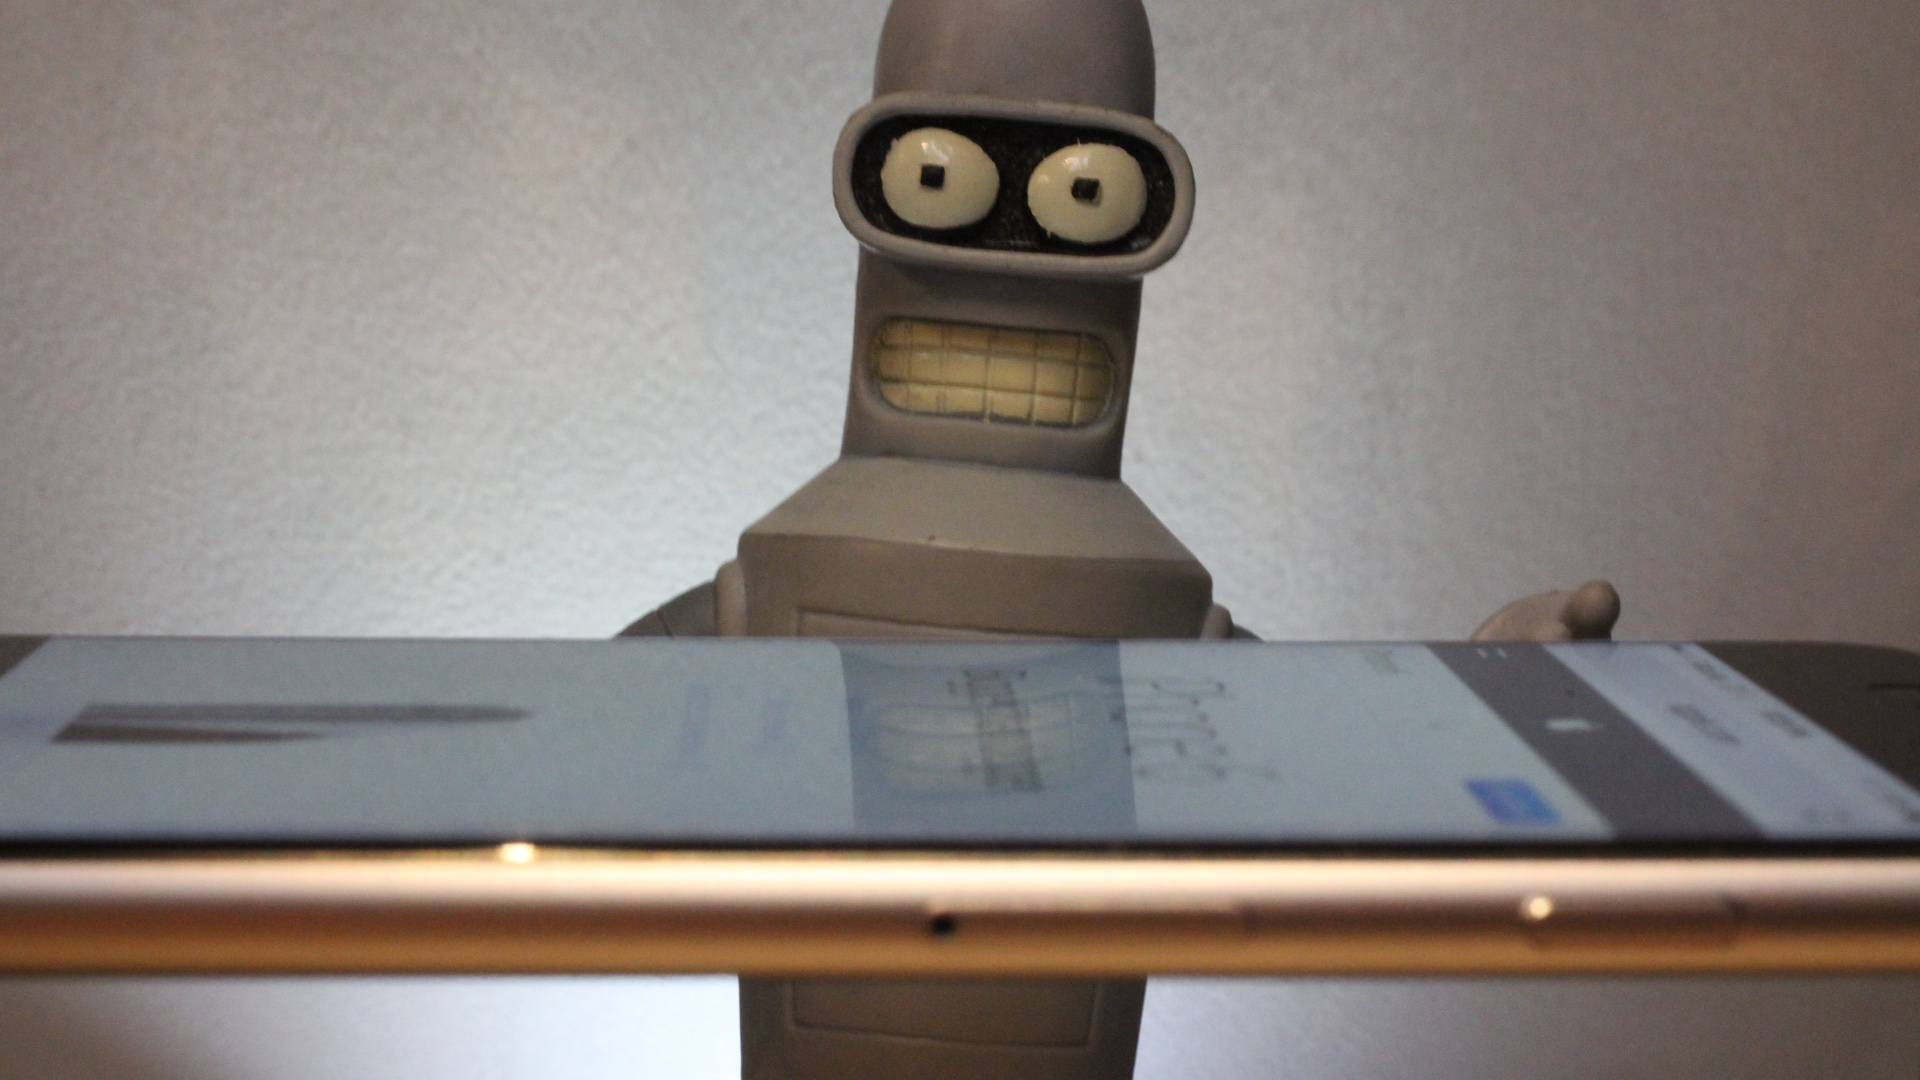 Bender performing Bending Test on iPhone 6